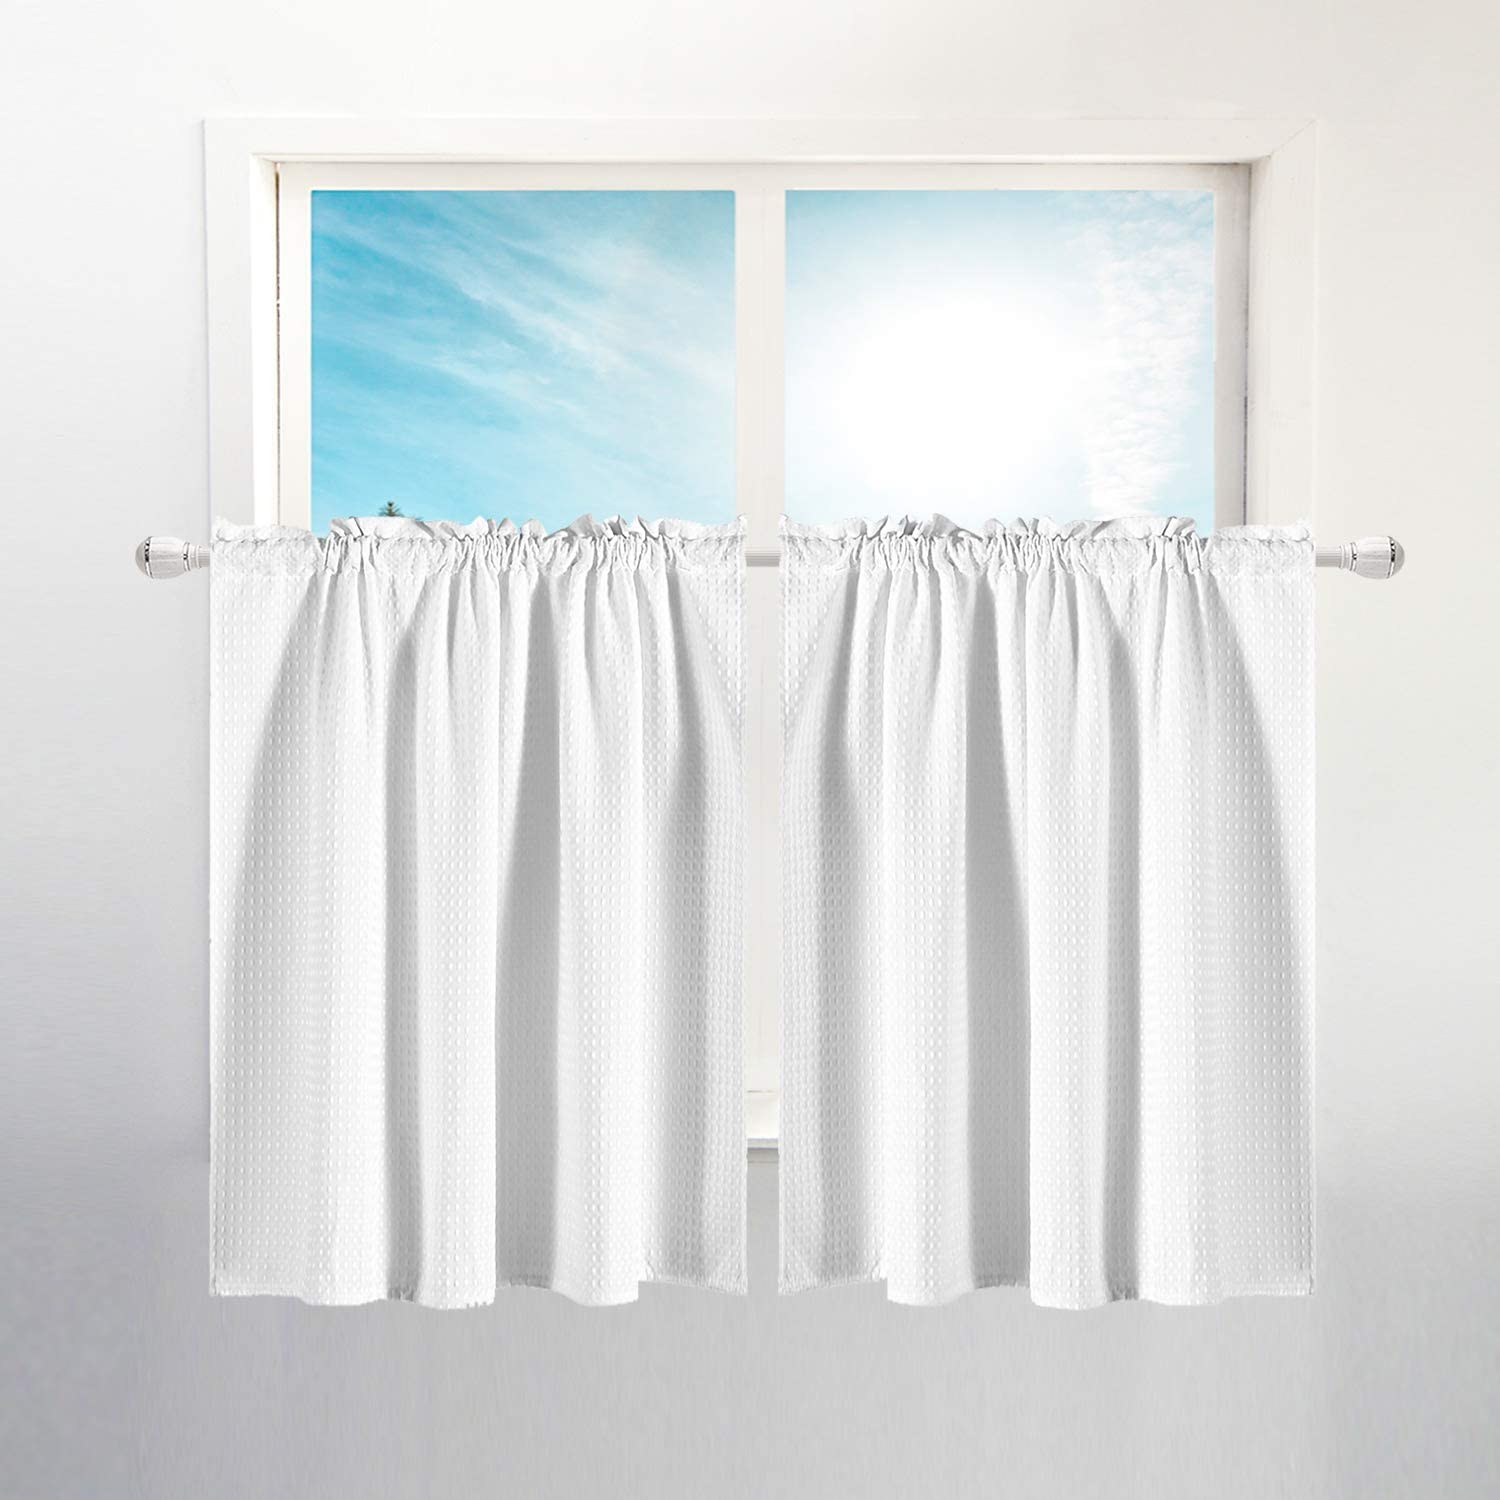 Amazon Com Waffle Weave Half Window Tier Curtains 36 Inch Short Length For Small Window In Kitchen Bathroom Waterproof And Washable White 36 X36 For Each Panel Set Of 2 Kitchen